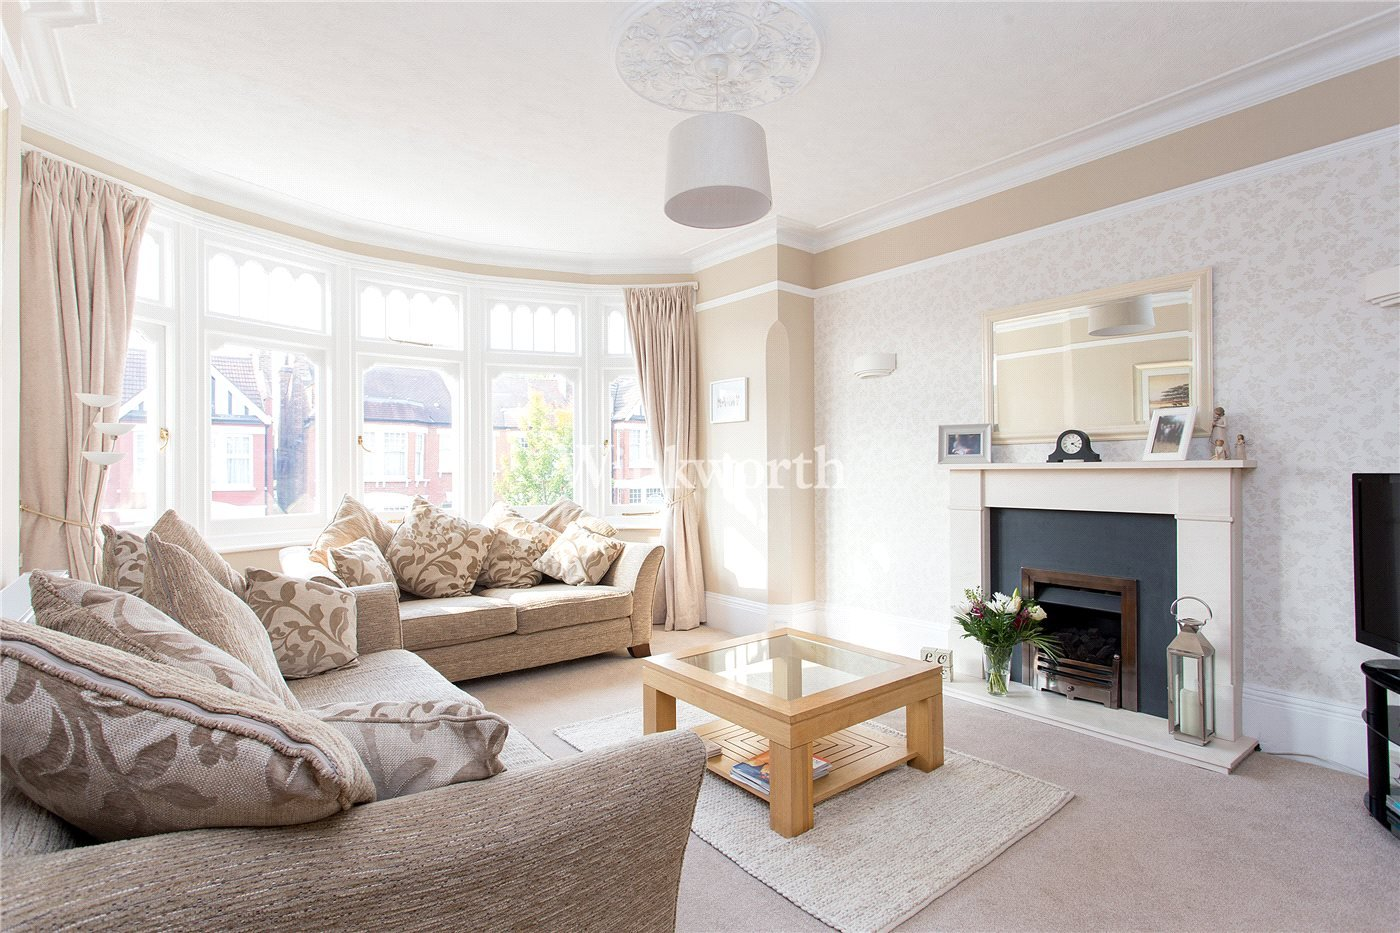 4 bedroom property for sale in Lakeside Road, London, N13 - £650,000